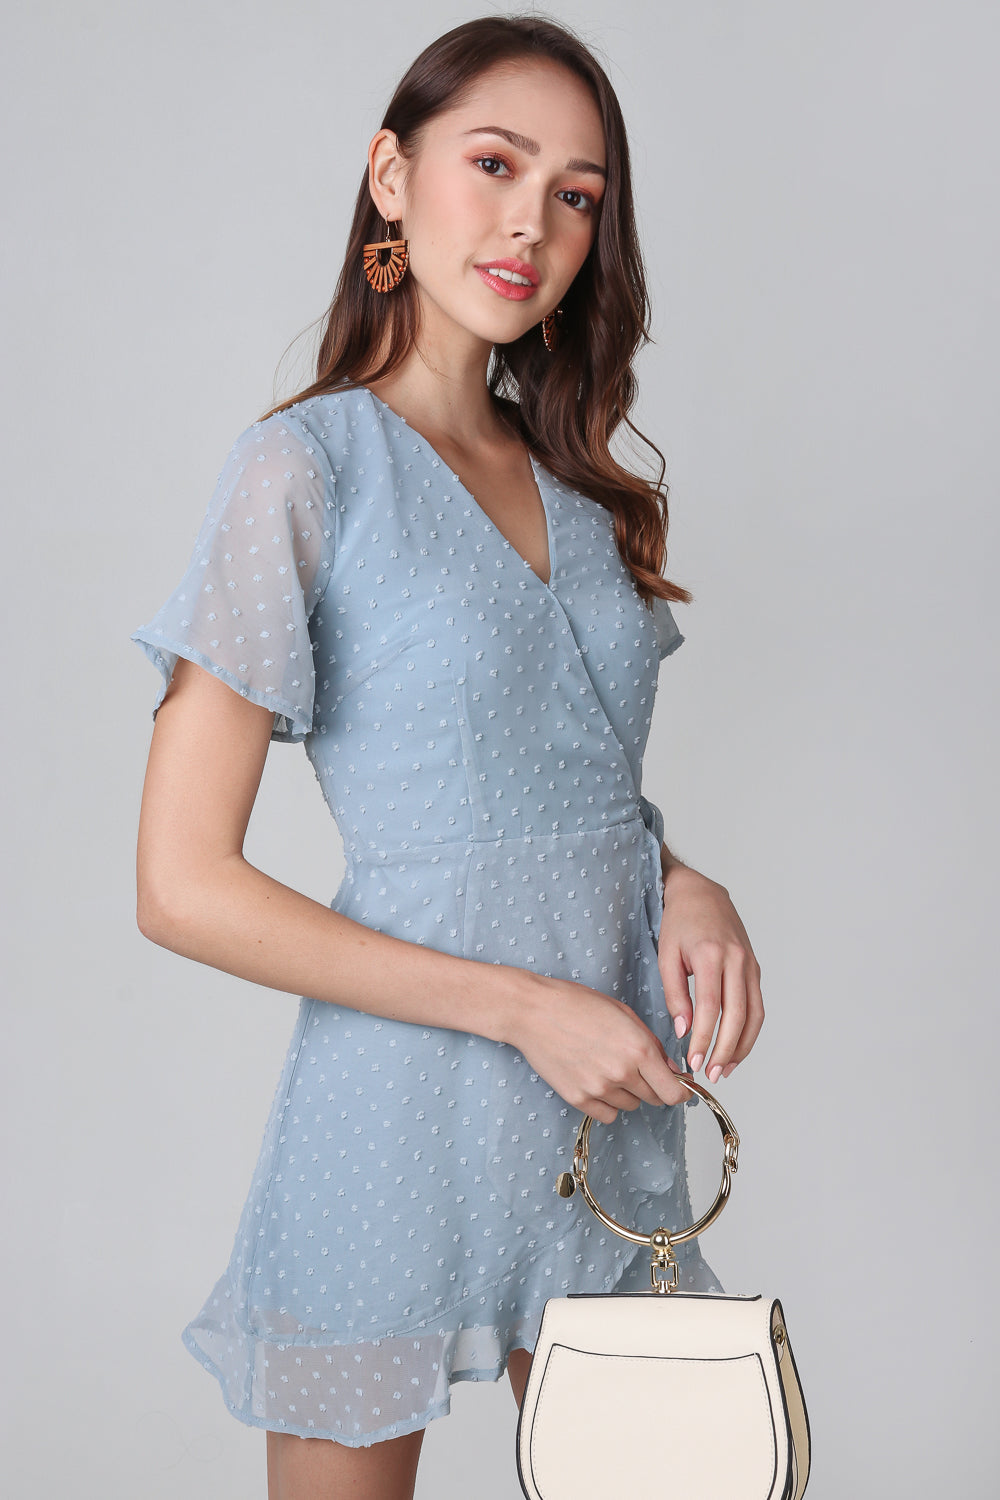 Ethel Swiss Dots Playsuit in Pale Turquoise